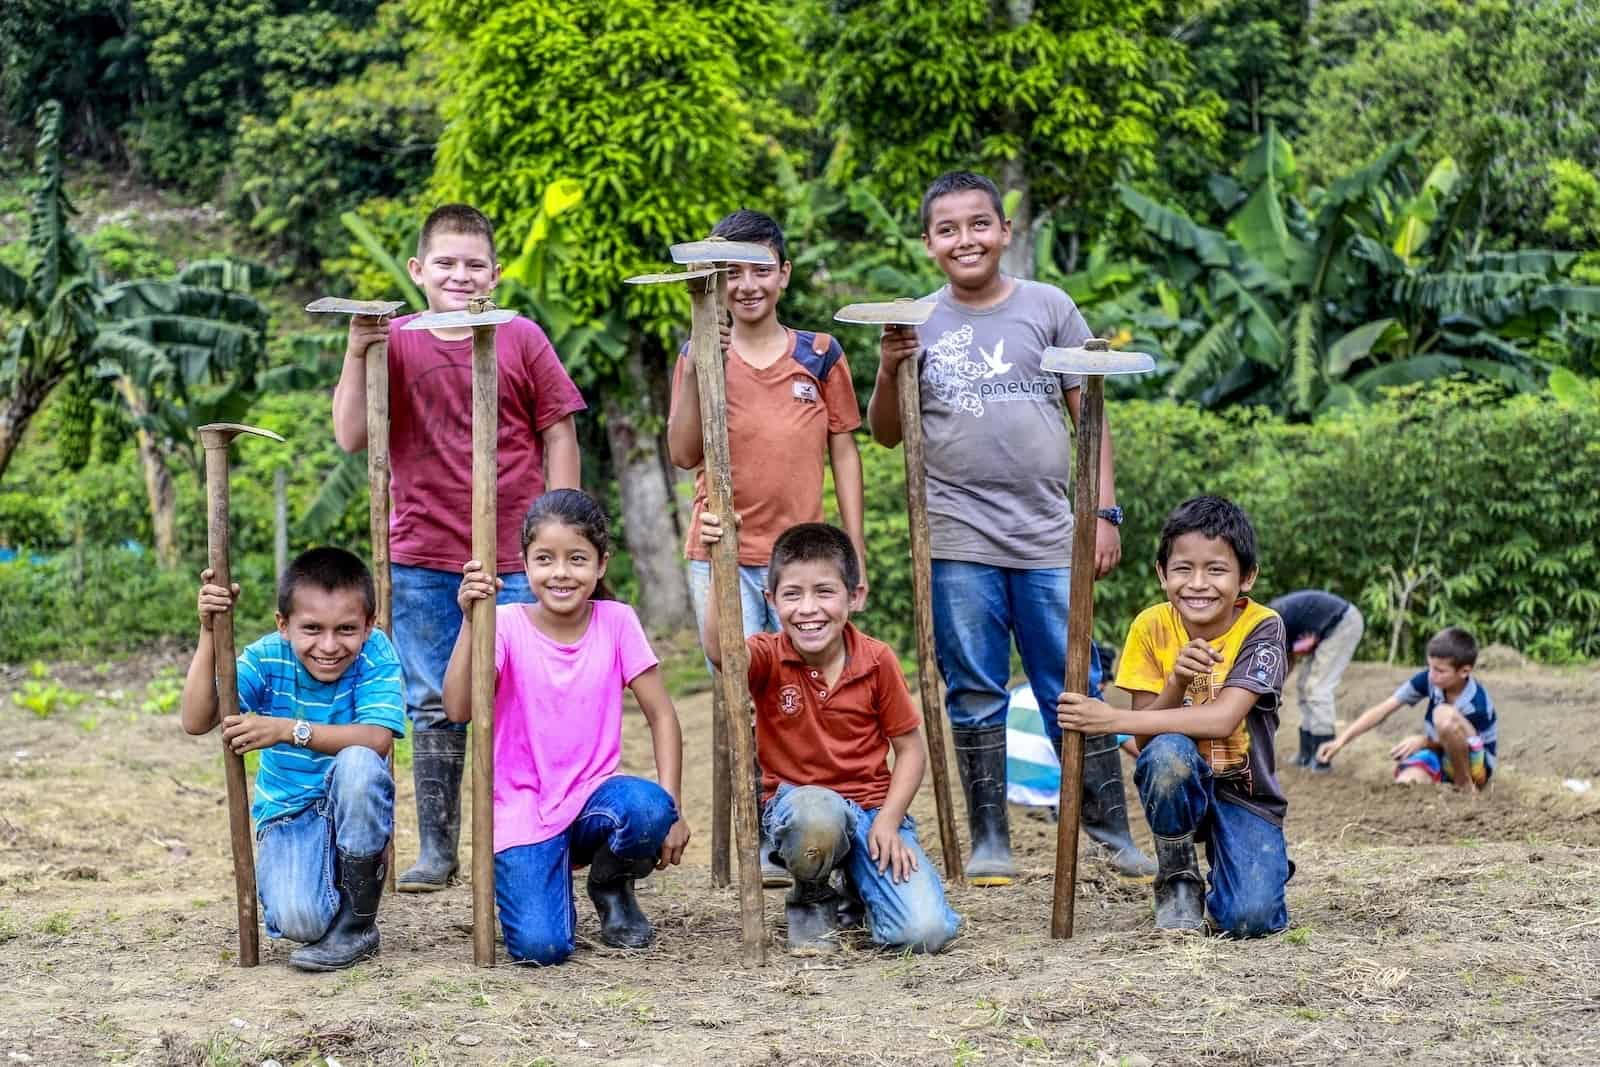 A group of seven children smile at the camera. Three are standing and three are crouching in a field, all holding hoes.